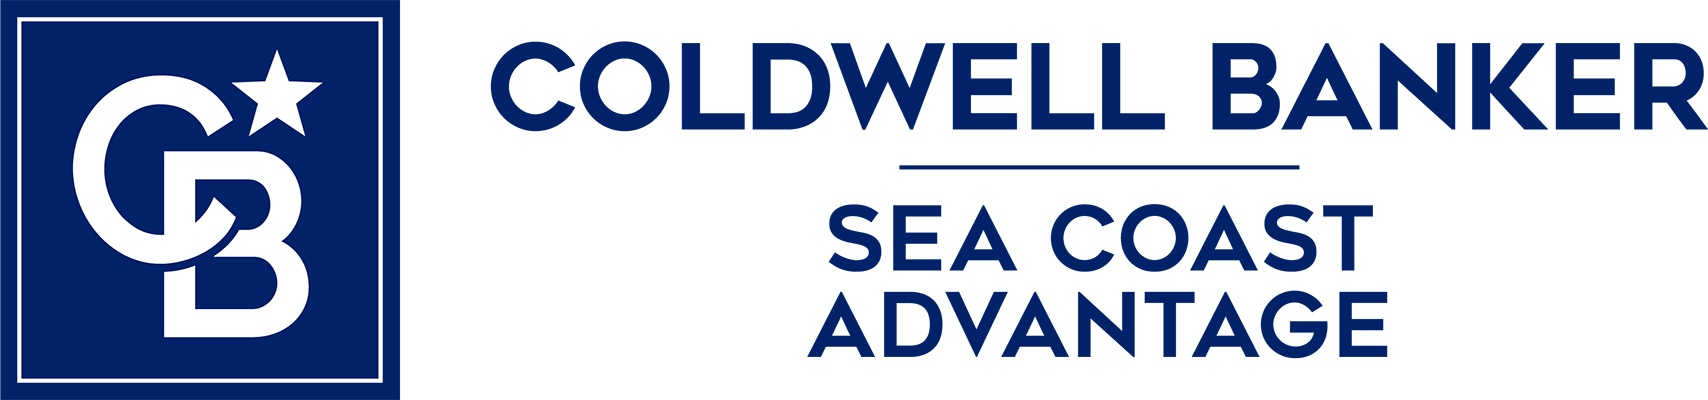 Wendy Rhodes - Coldwell Banker Sea Coast Advantage Realty